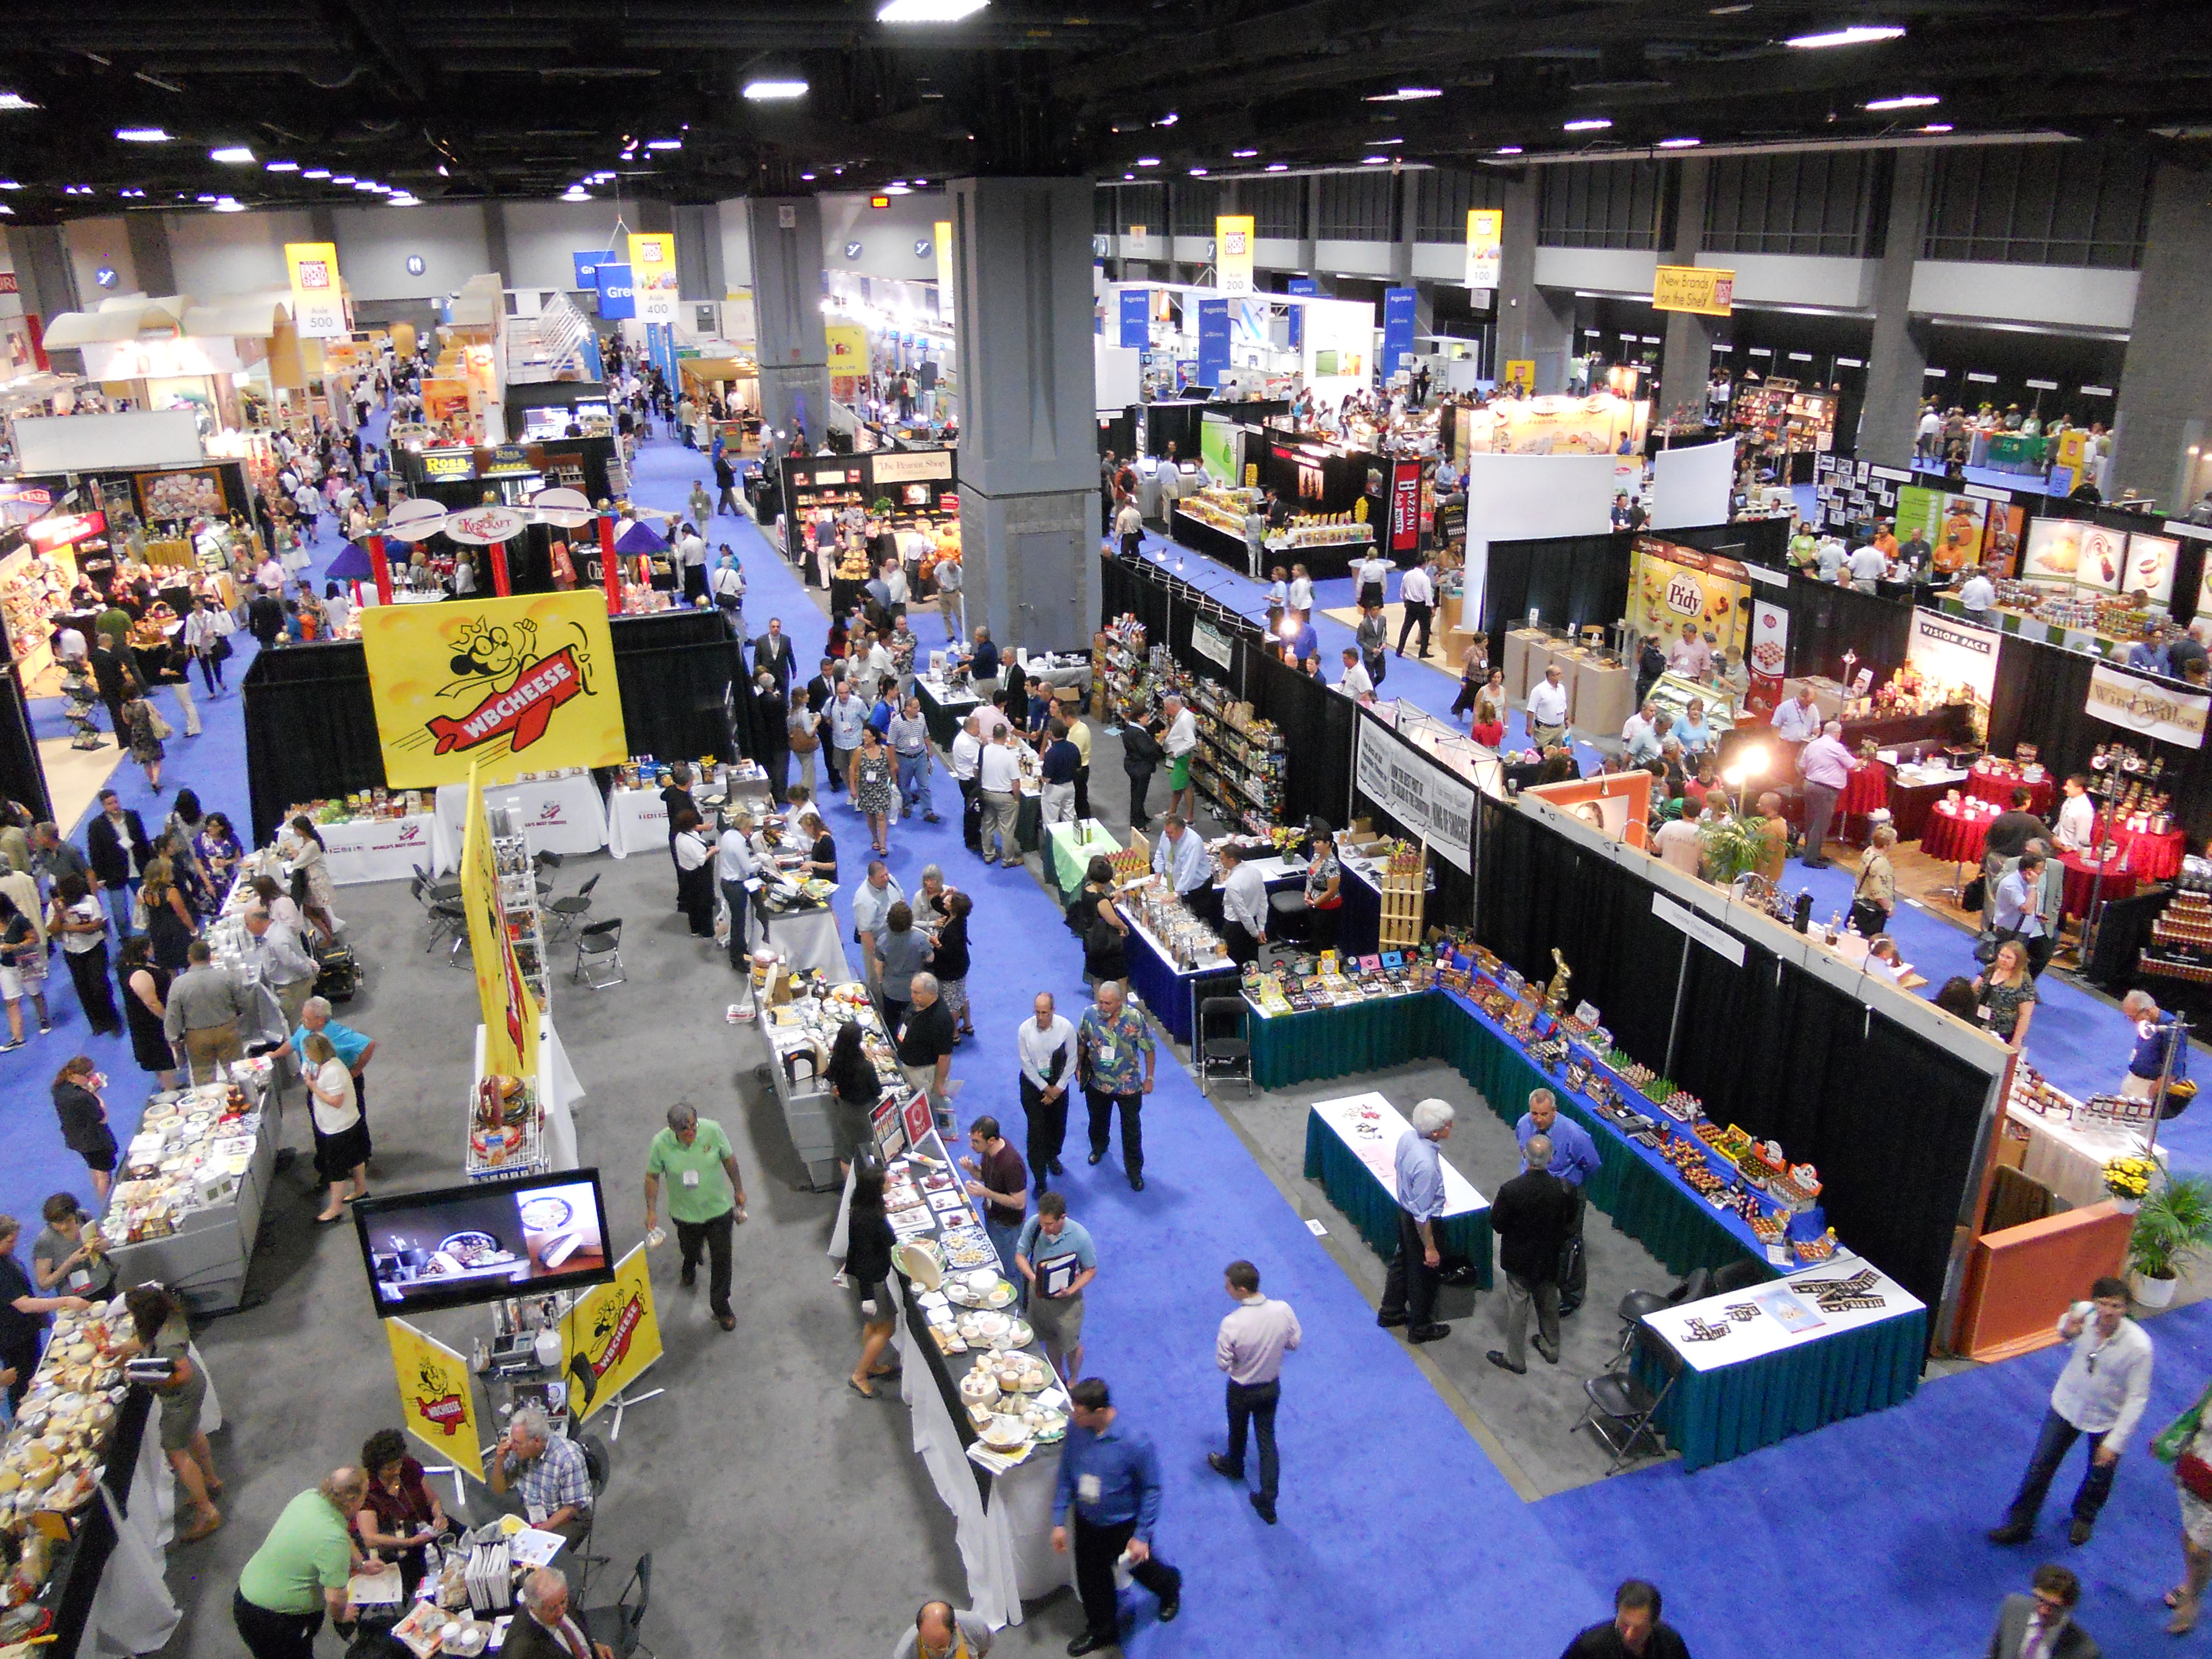 As a novice last year  I remember eating my way down a random aisle at the  Jacob Javits Center in New York  On either side  friendly  smiling faces  enticed  NASFT Fancy Food Show   Washington DC  July 10 12 2011   Rice   Curry. Fancy Food Show New York Address. Home Design Ideas